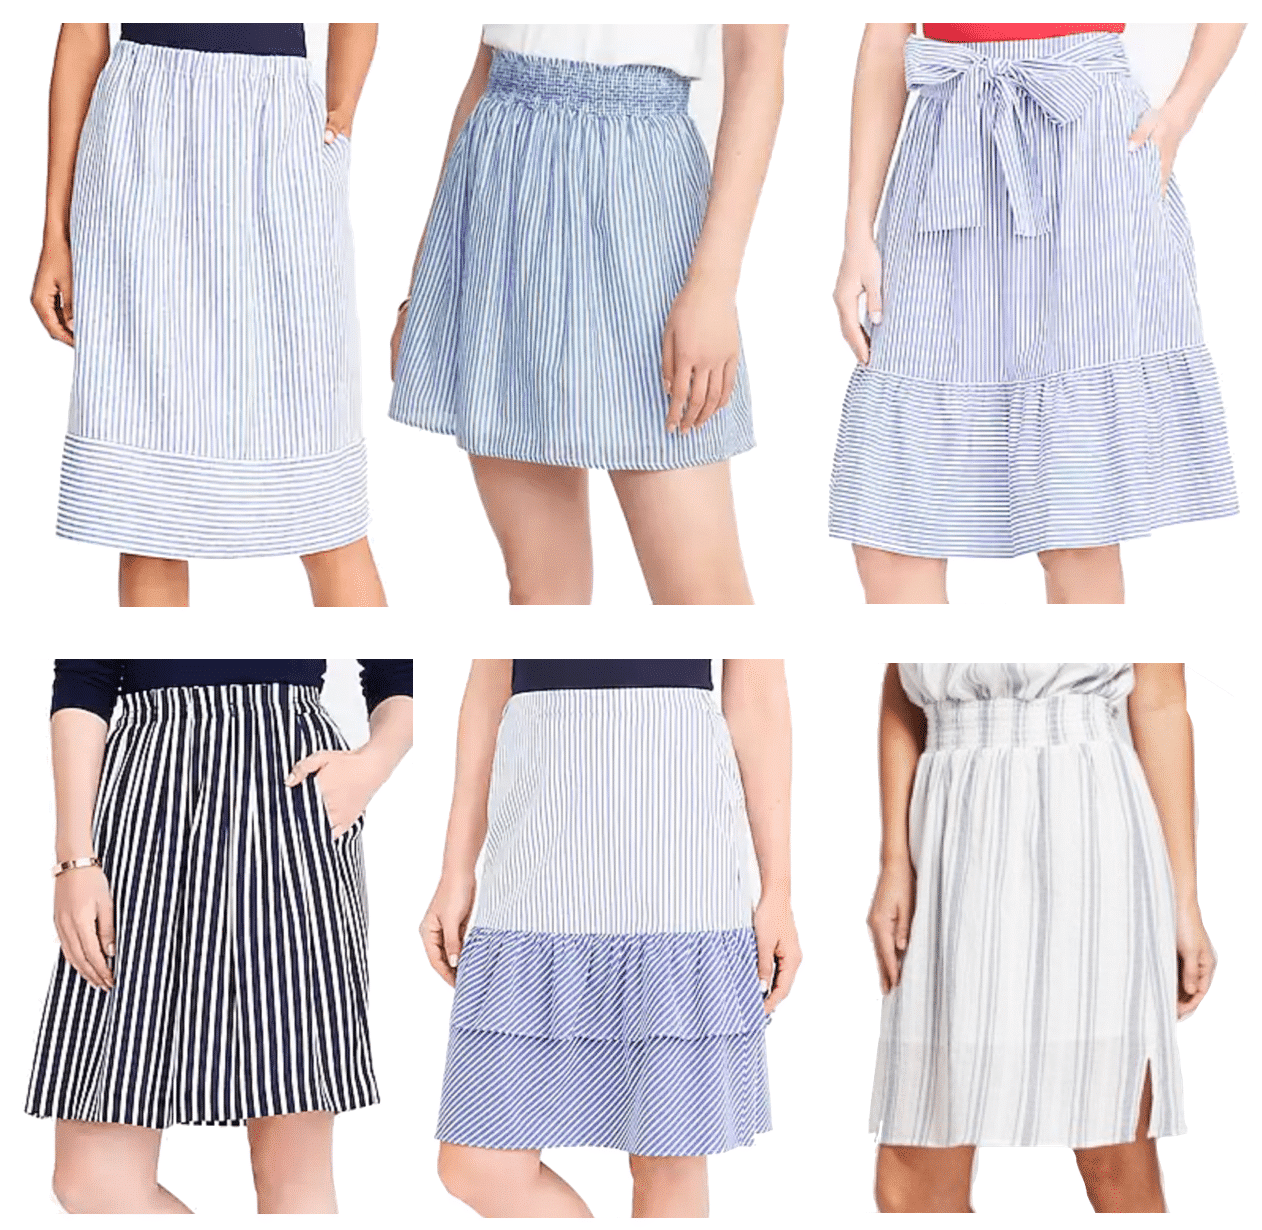 4 Outfits With a Blue Striped Skirt